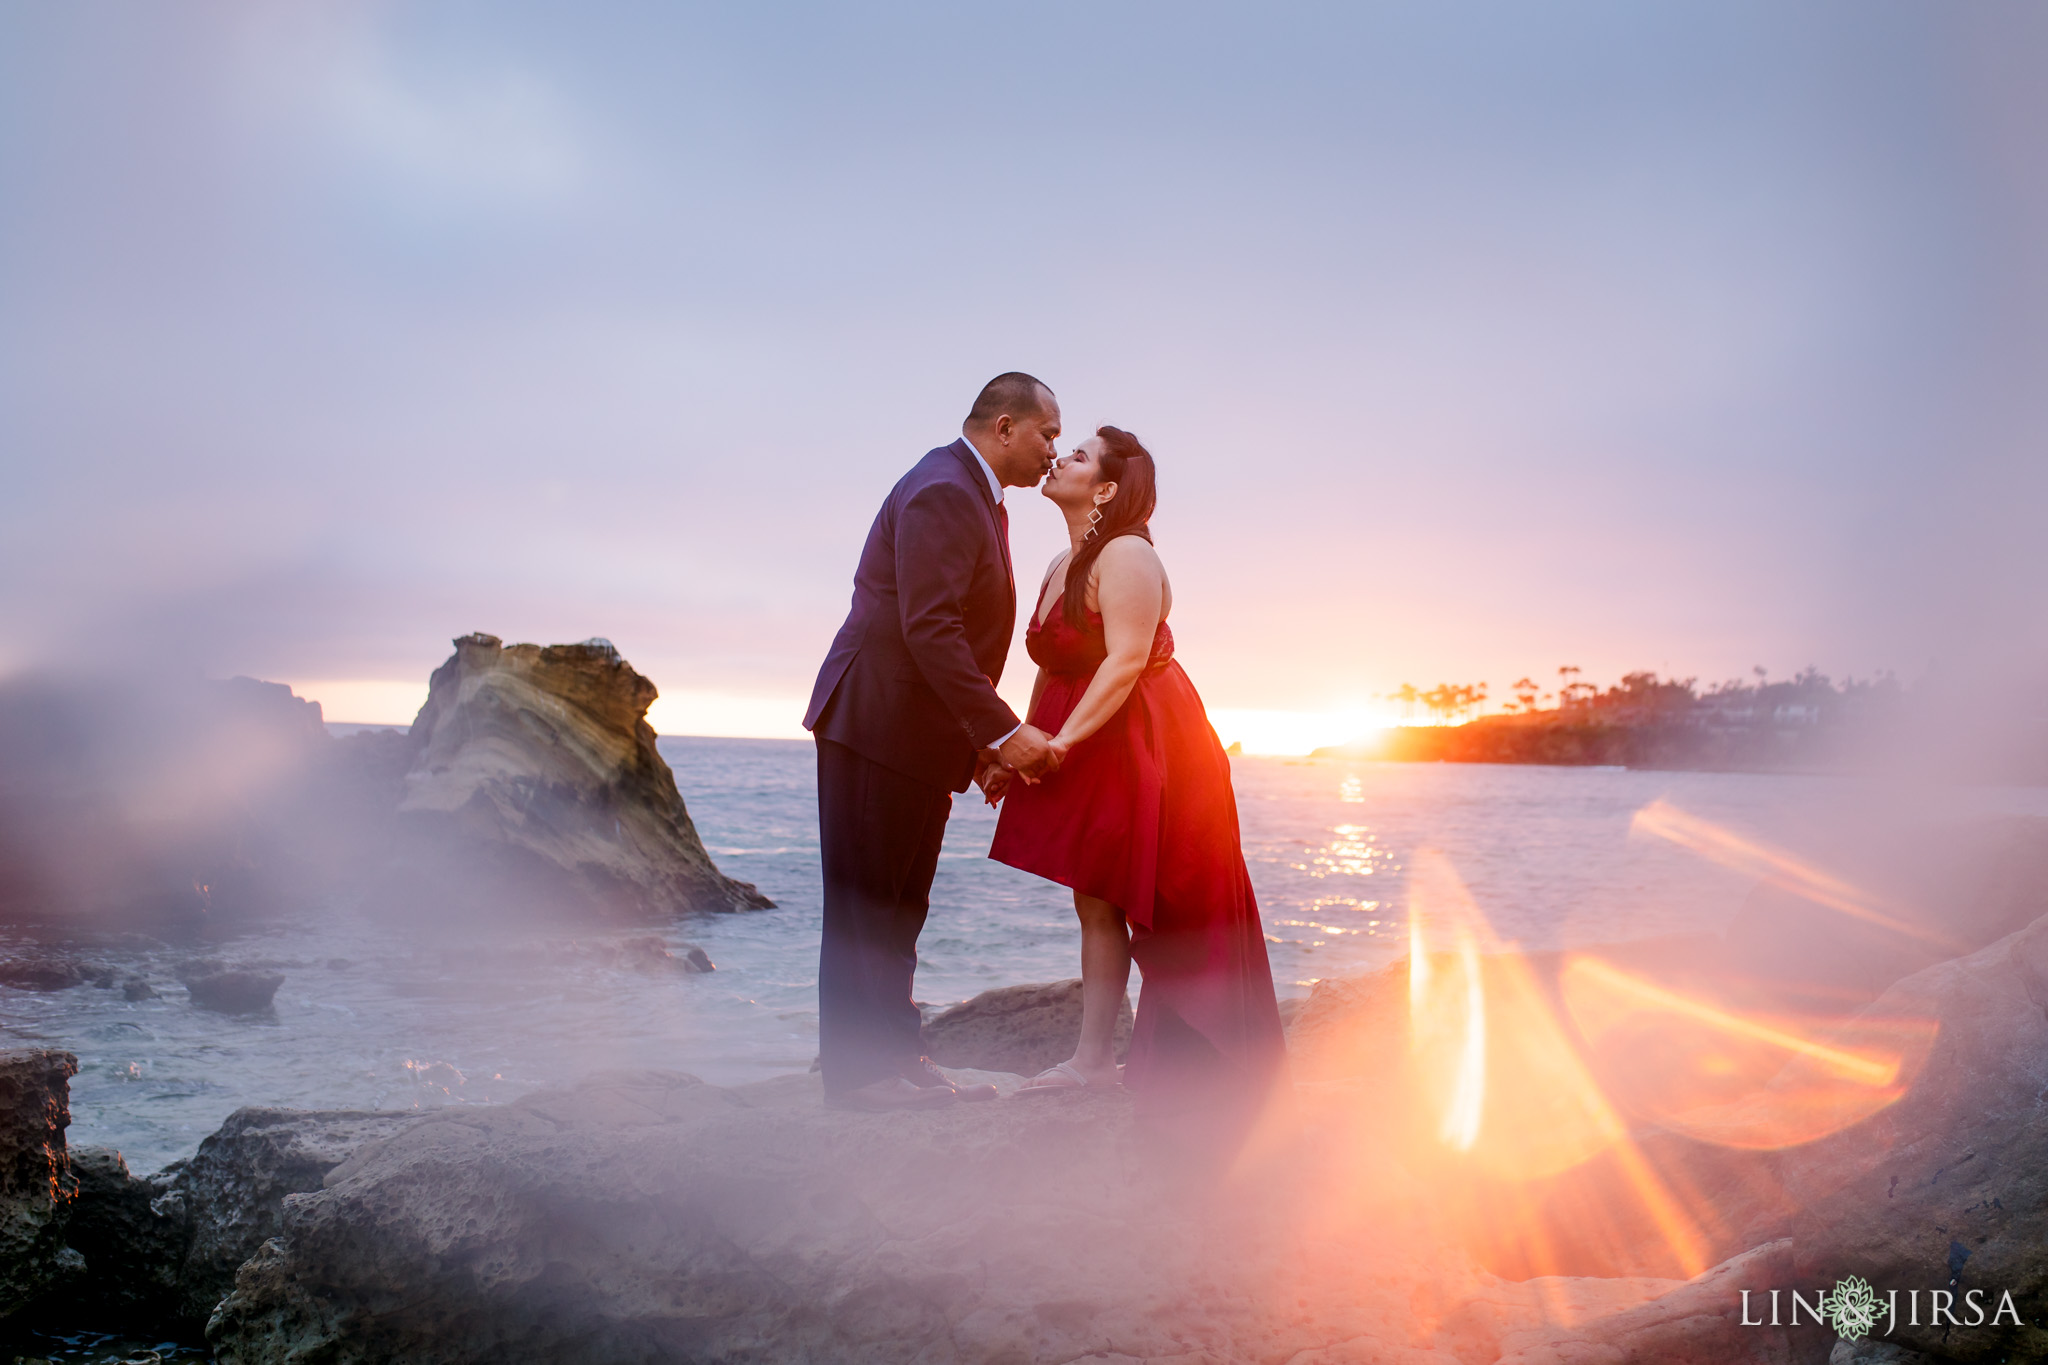 07 Heisler Park Orange County Engagement Photographer